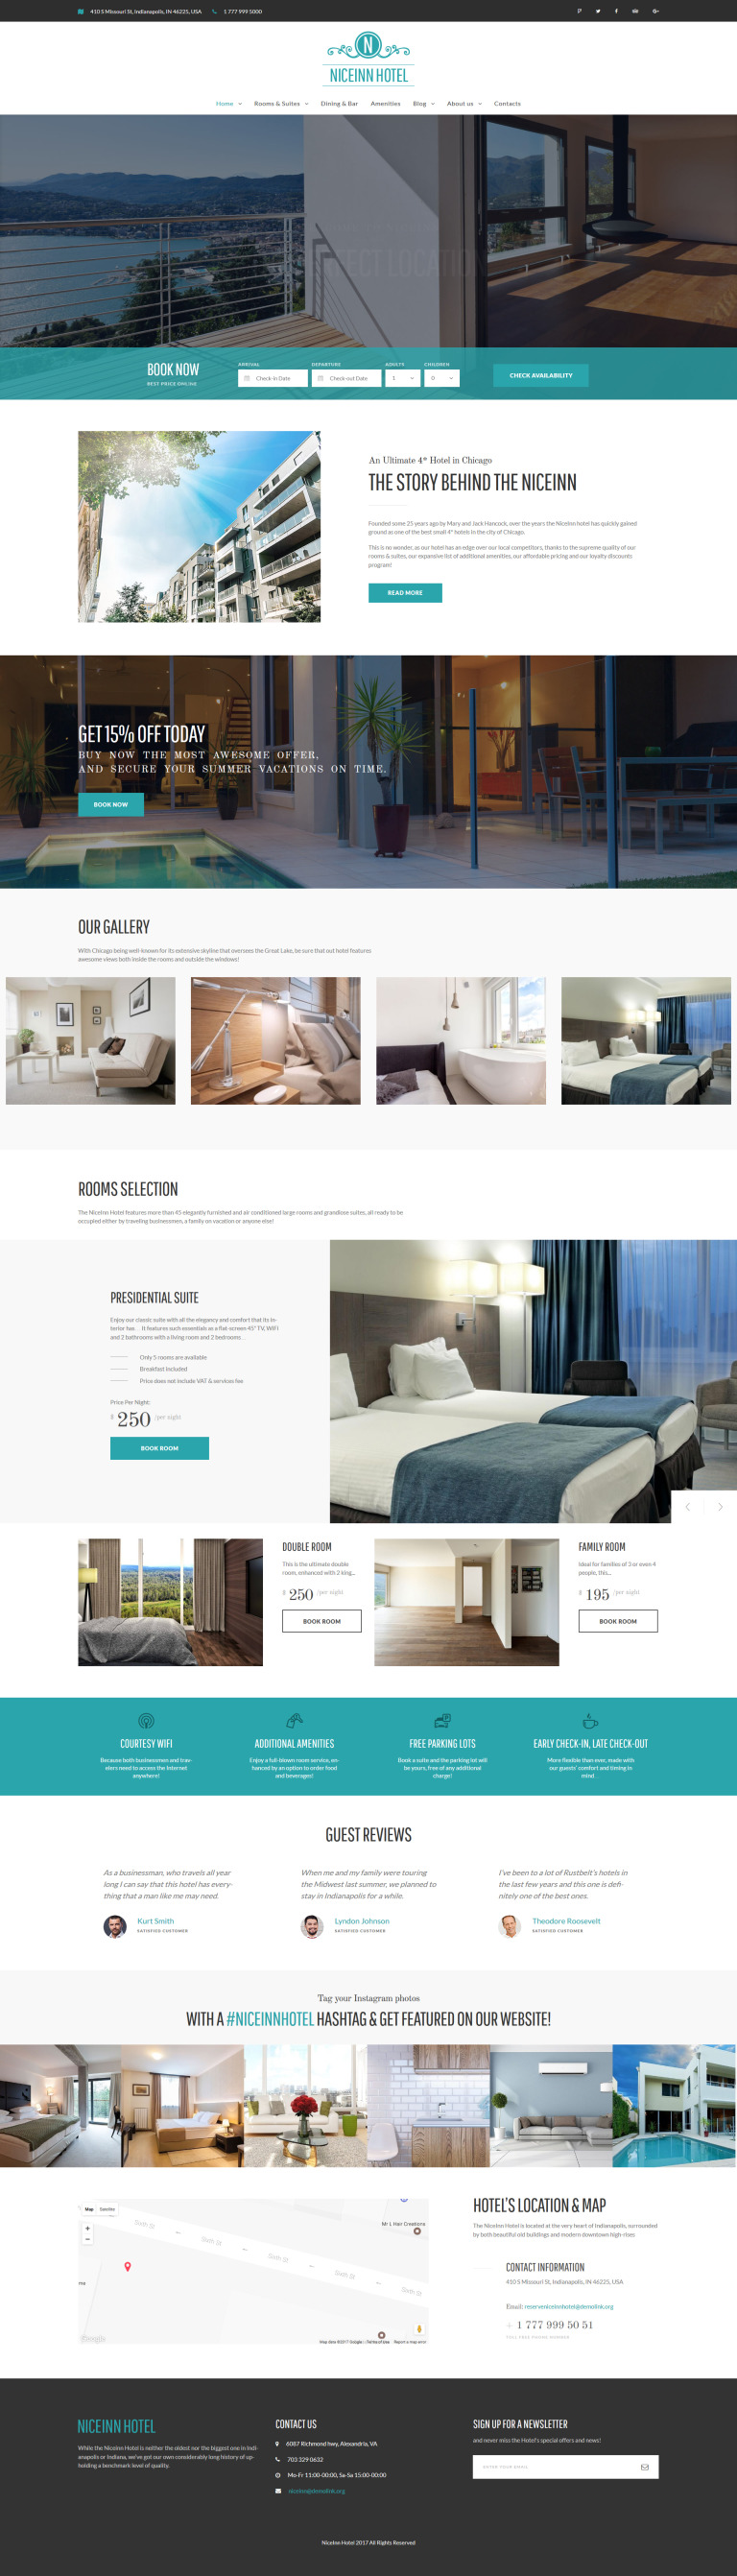 NiceInn - Small Hotel Responsive WordPress Theme New Screenshots BIG